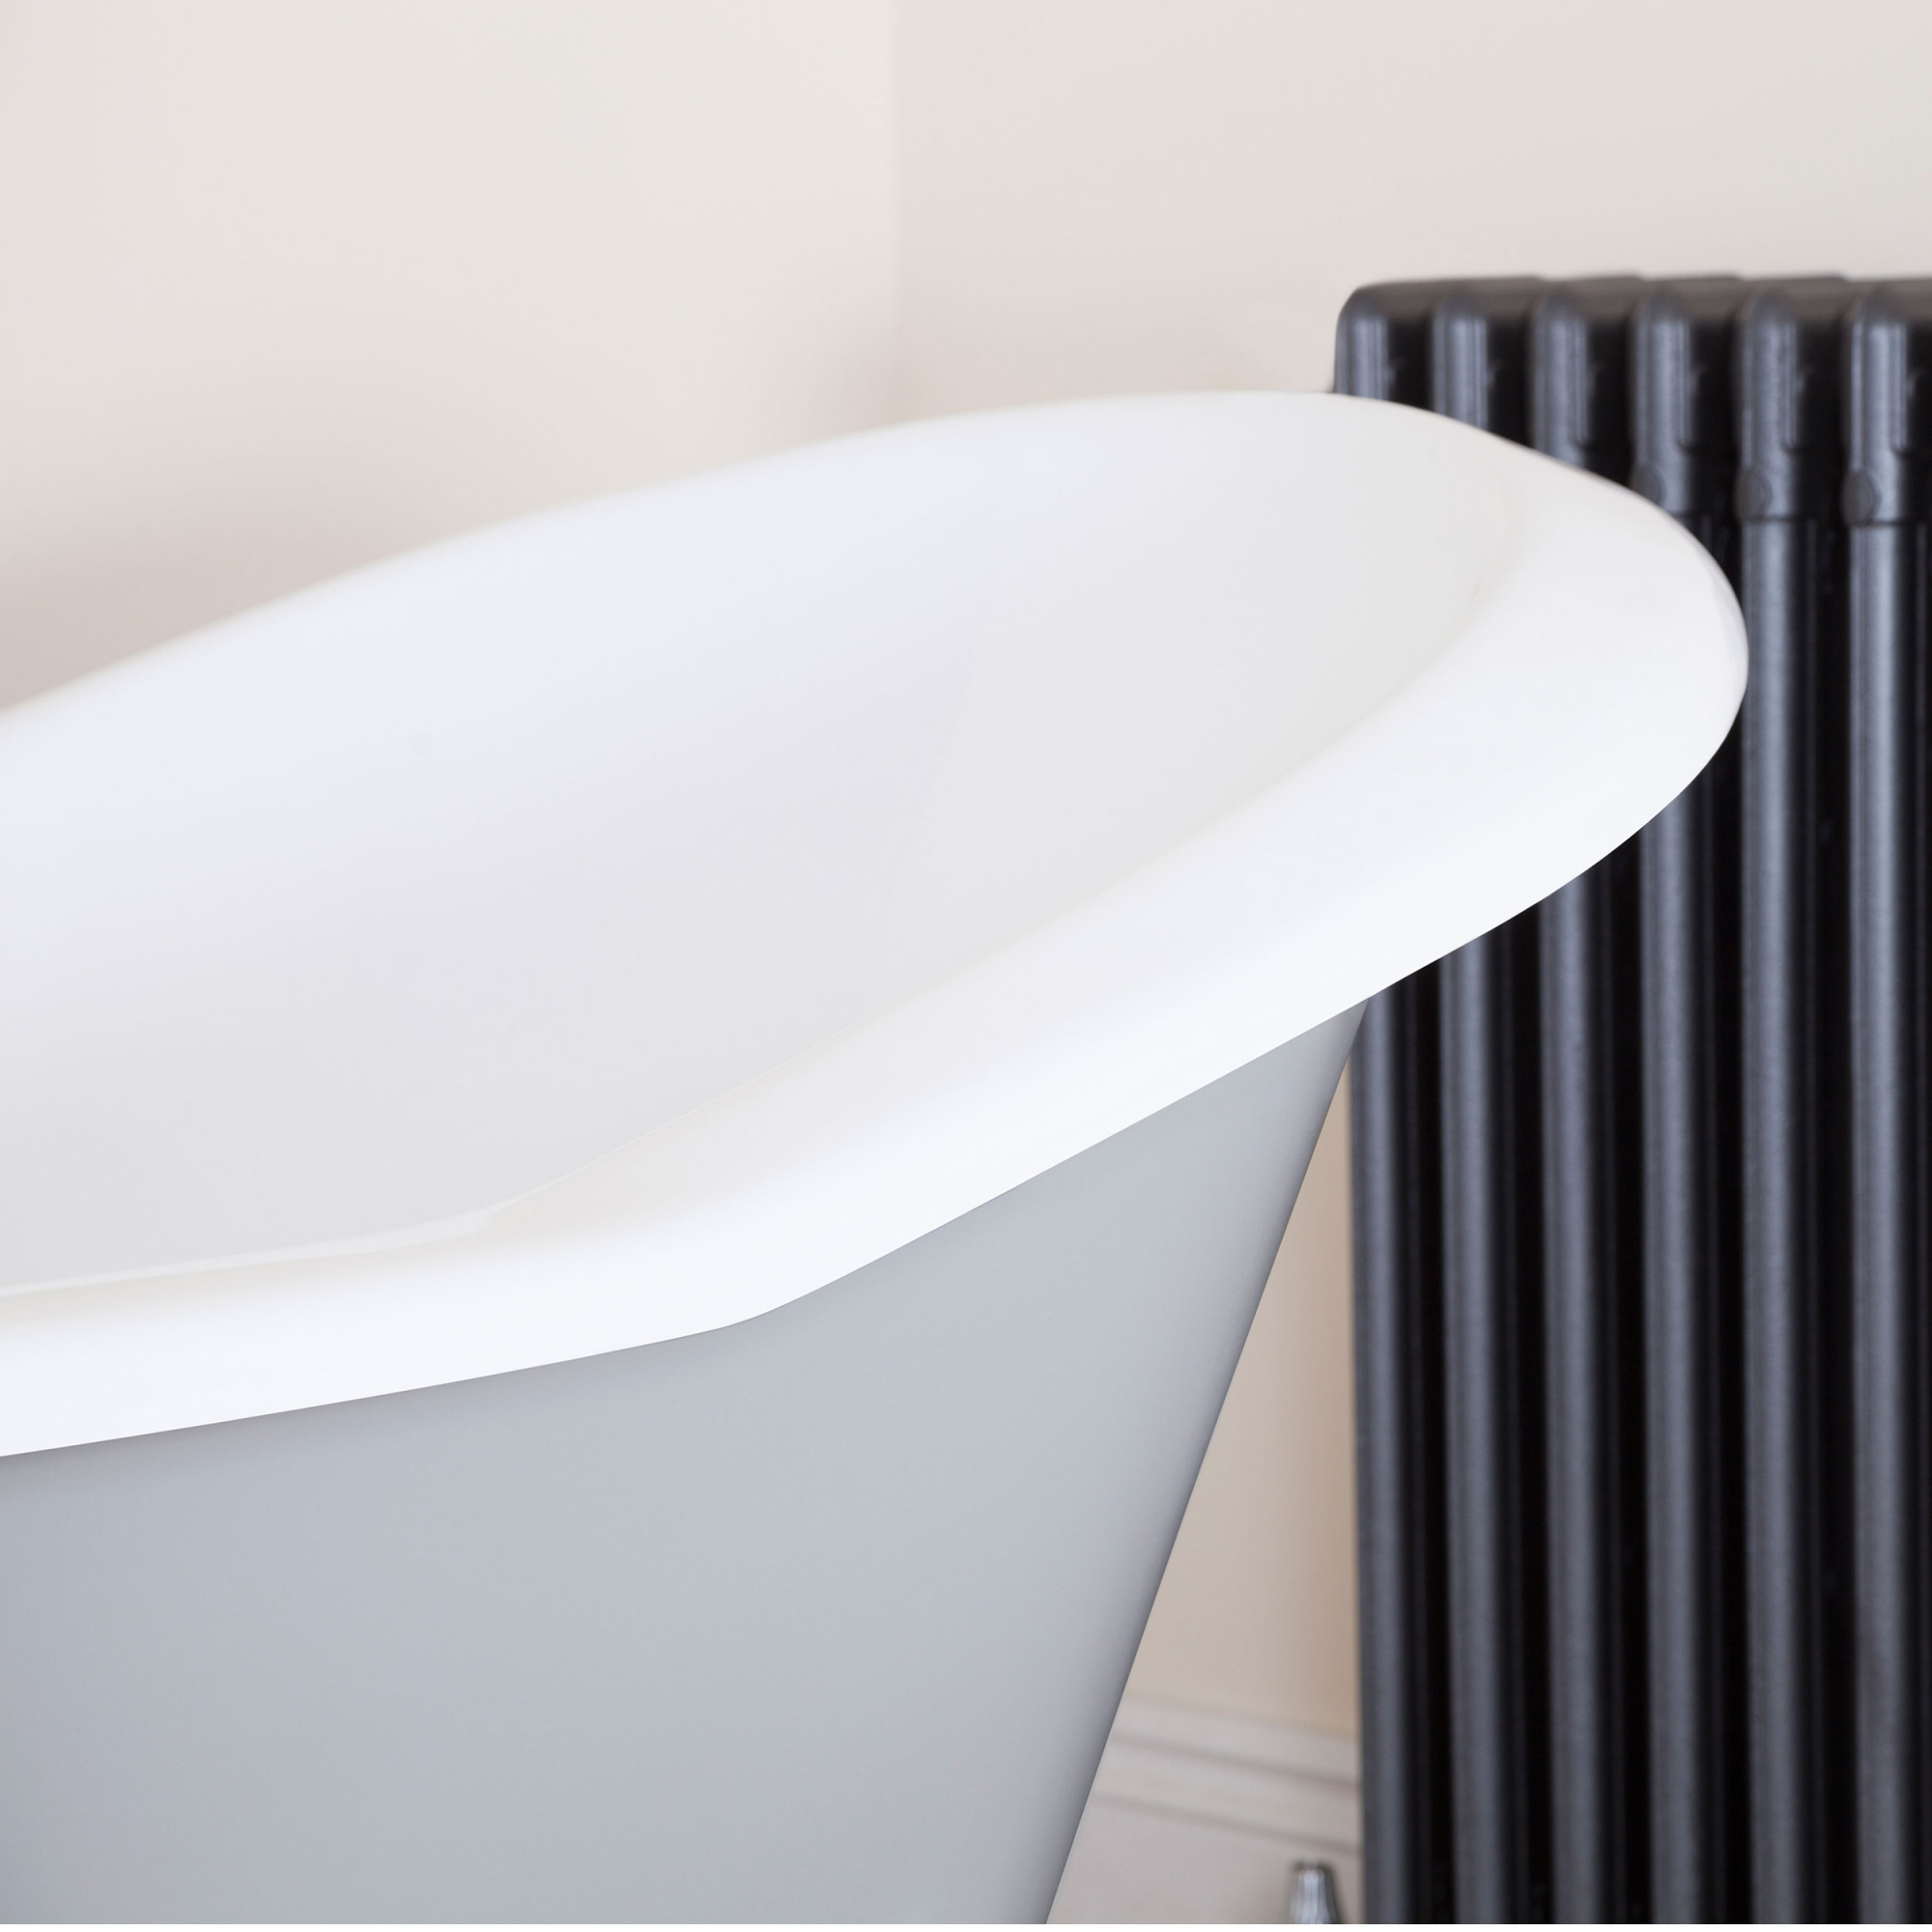 Jig Banburgh Large Cast Iron Roll Top Slipper Bath including Chrome Feet - 0 Tap Hole-0